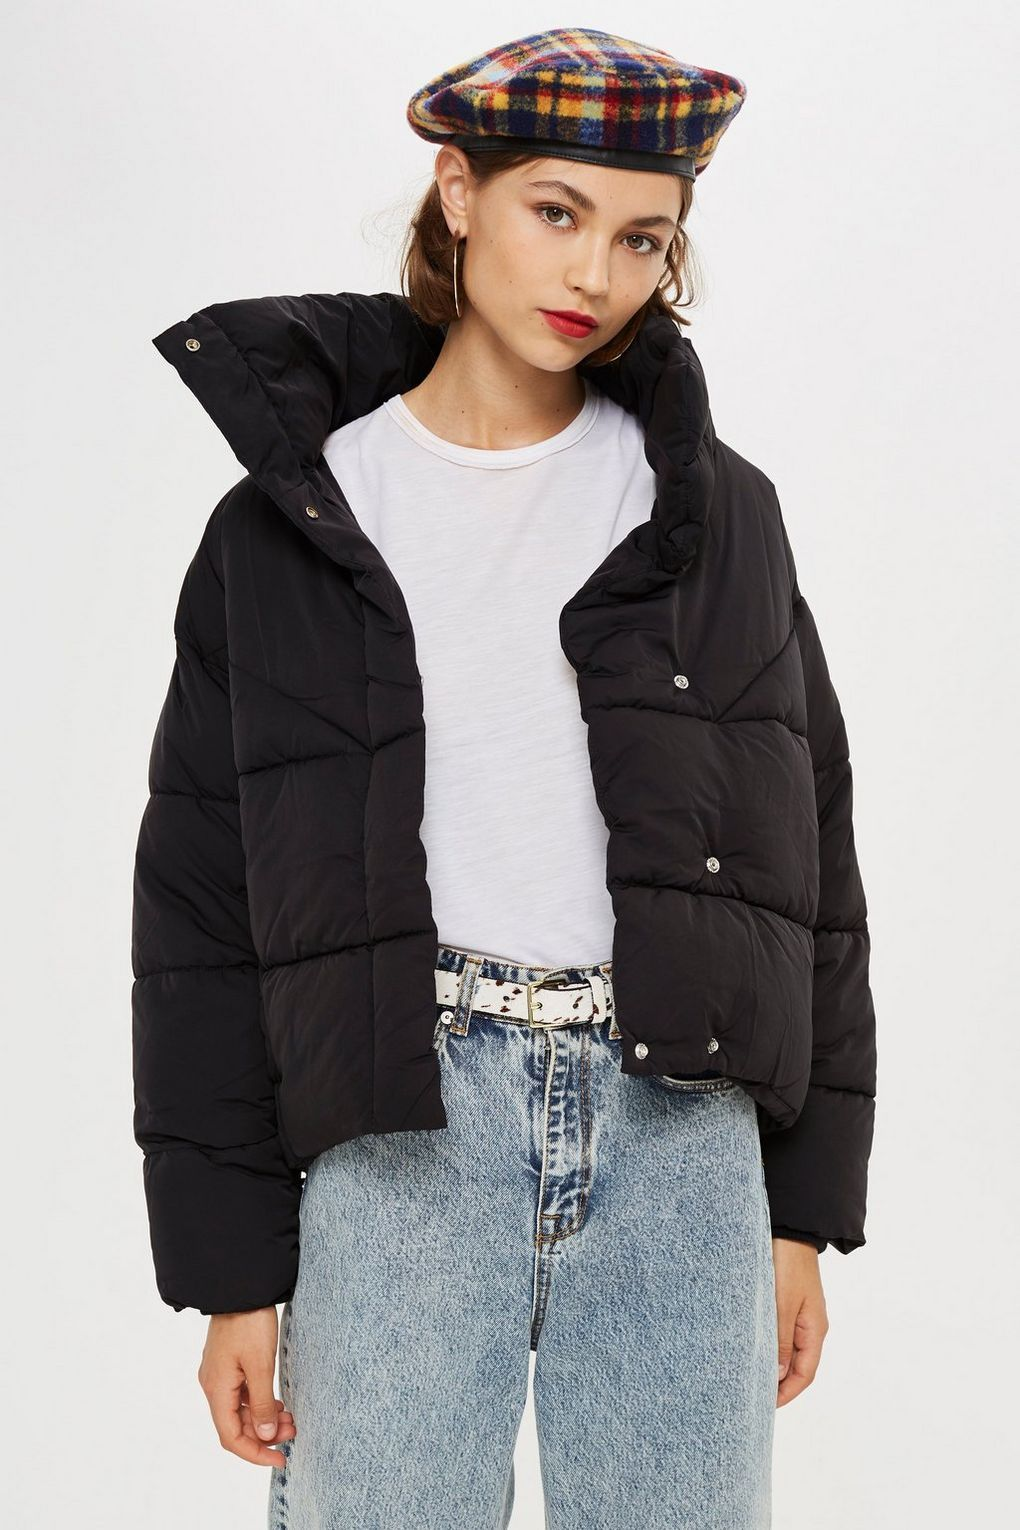 Black Wrap Puffer Jacket - Topshop USA ada930a7c4b